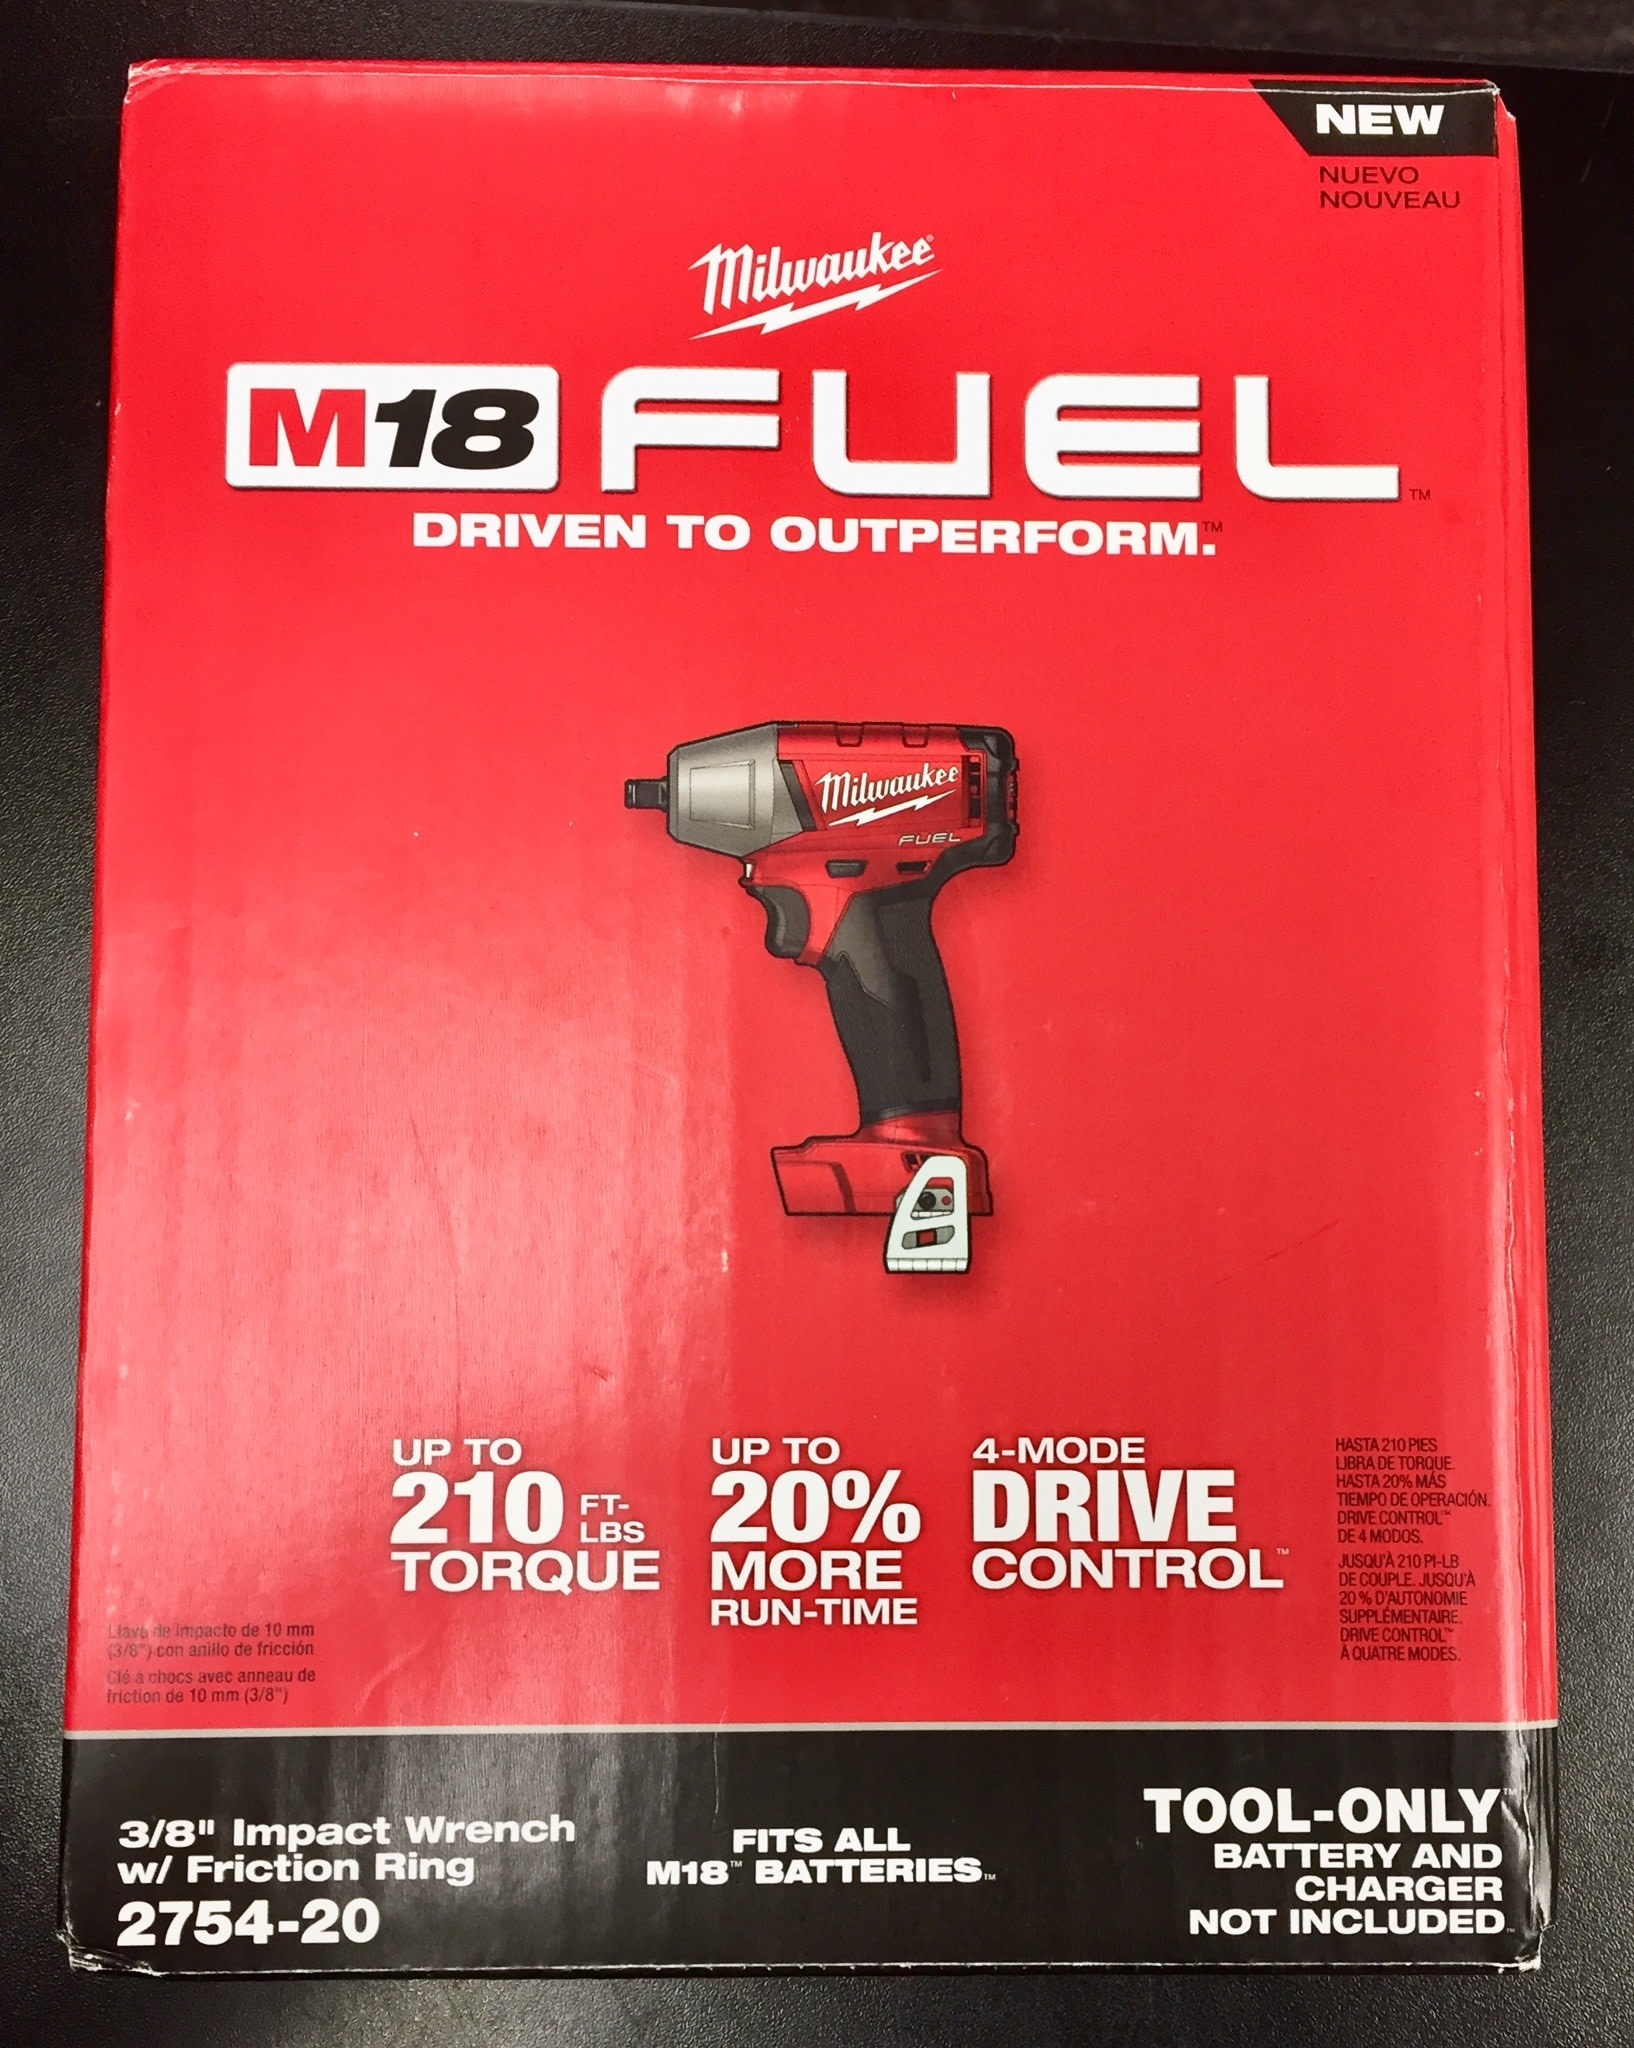 "New - Milwaukee M18 FUEL 18-Volt 3/8"" Compact Impact Wrench - 2754-20"